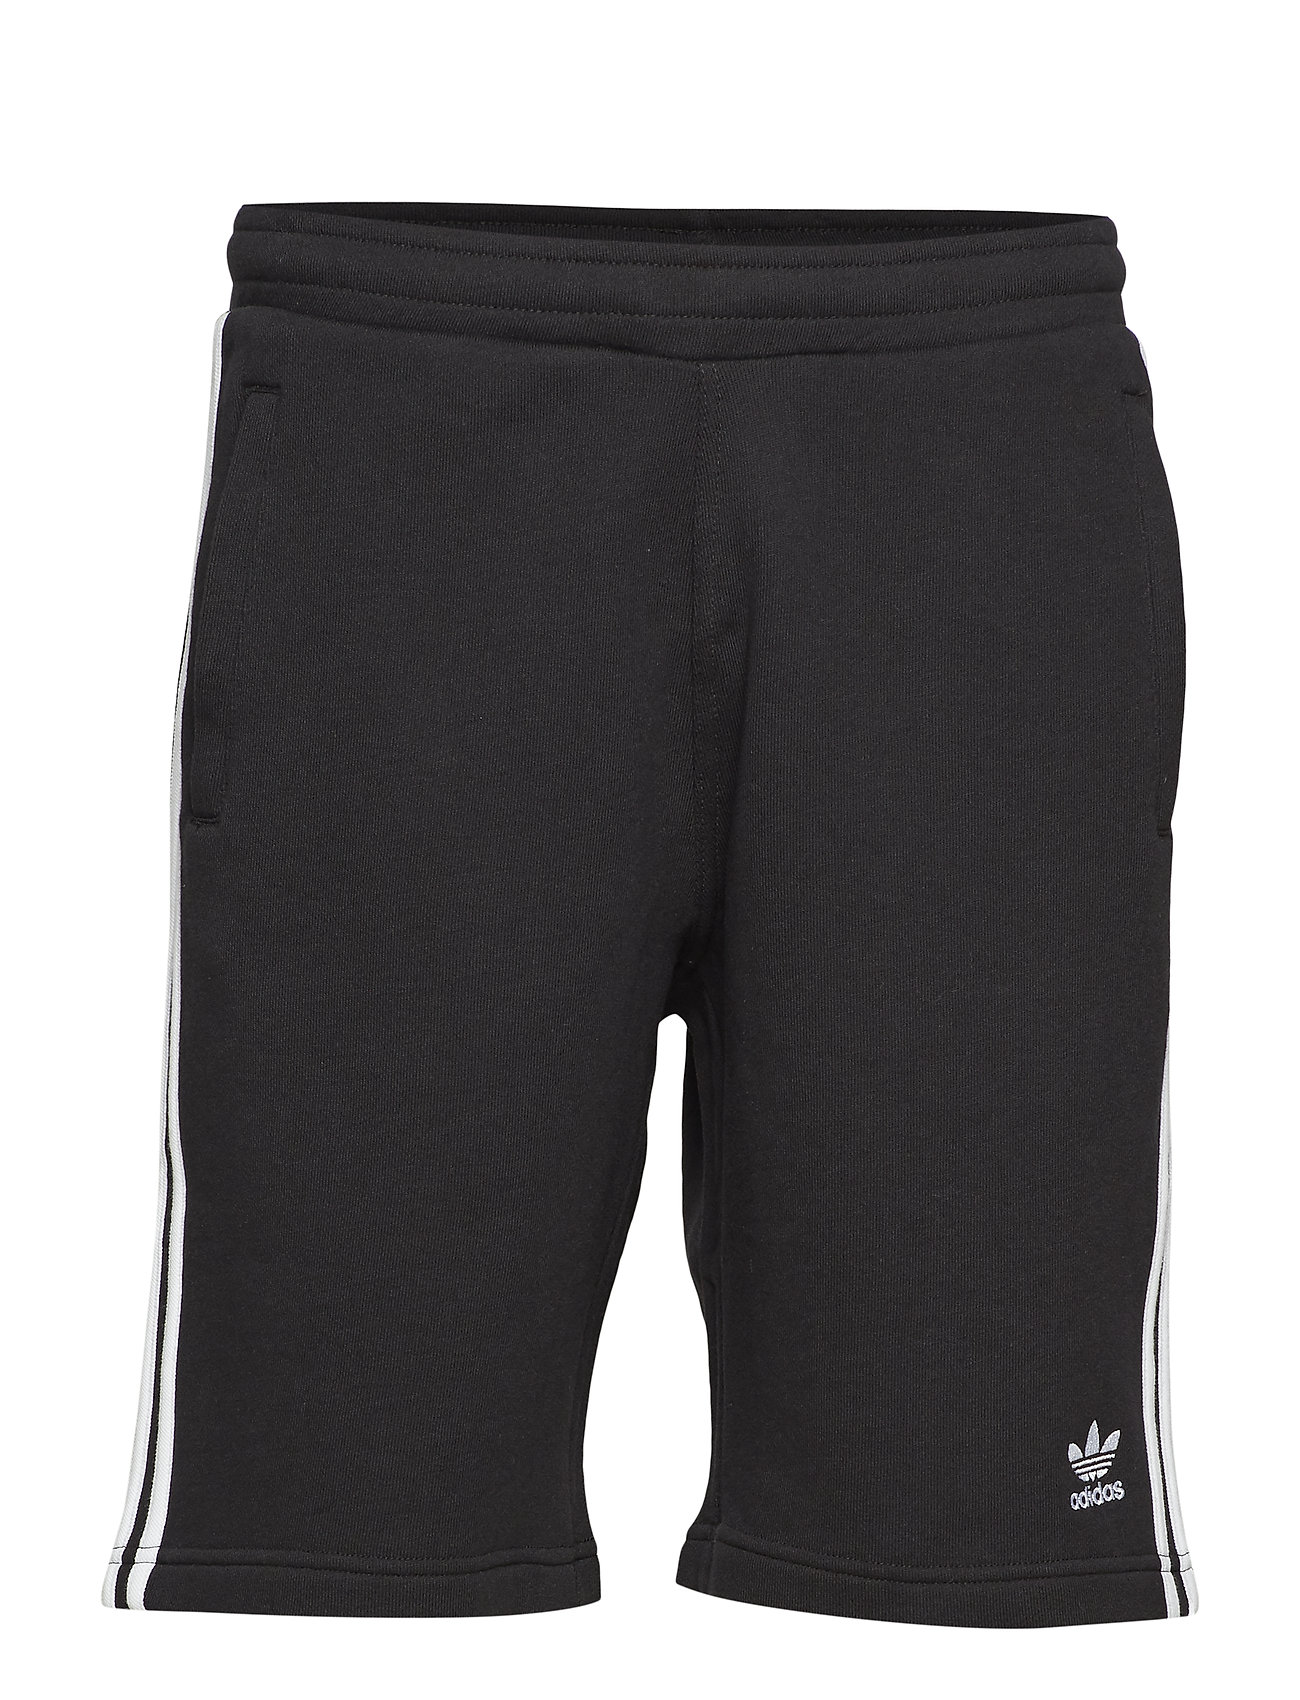 1f8ae6266a4 3-stripe Short (Black) (349 kr) - adidas Originals - | Boozt.com